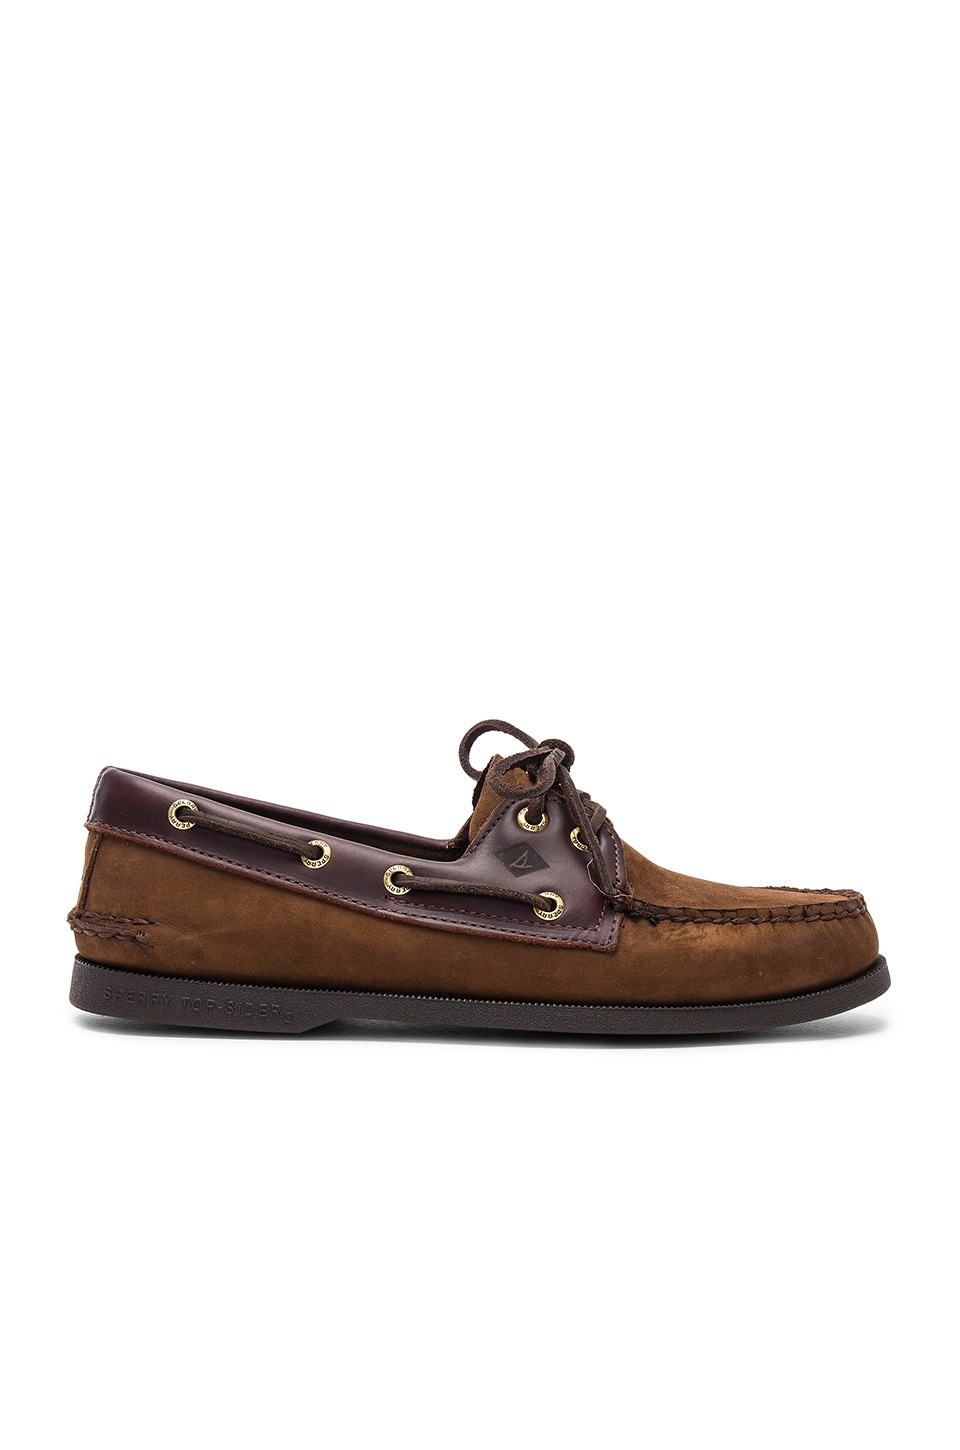 Sperry Top-Sider A/O 2-Eye in Brown/Buck Brown